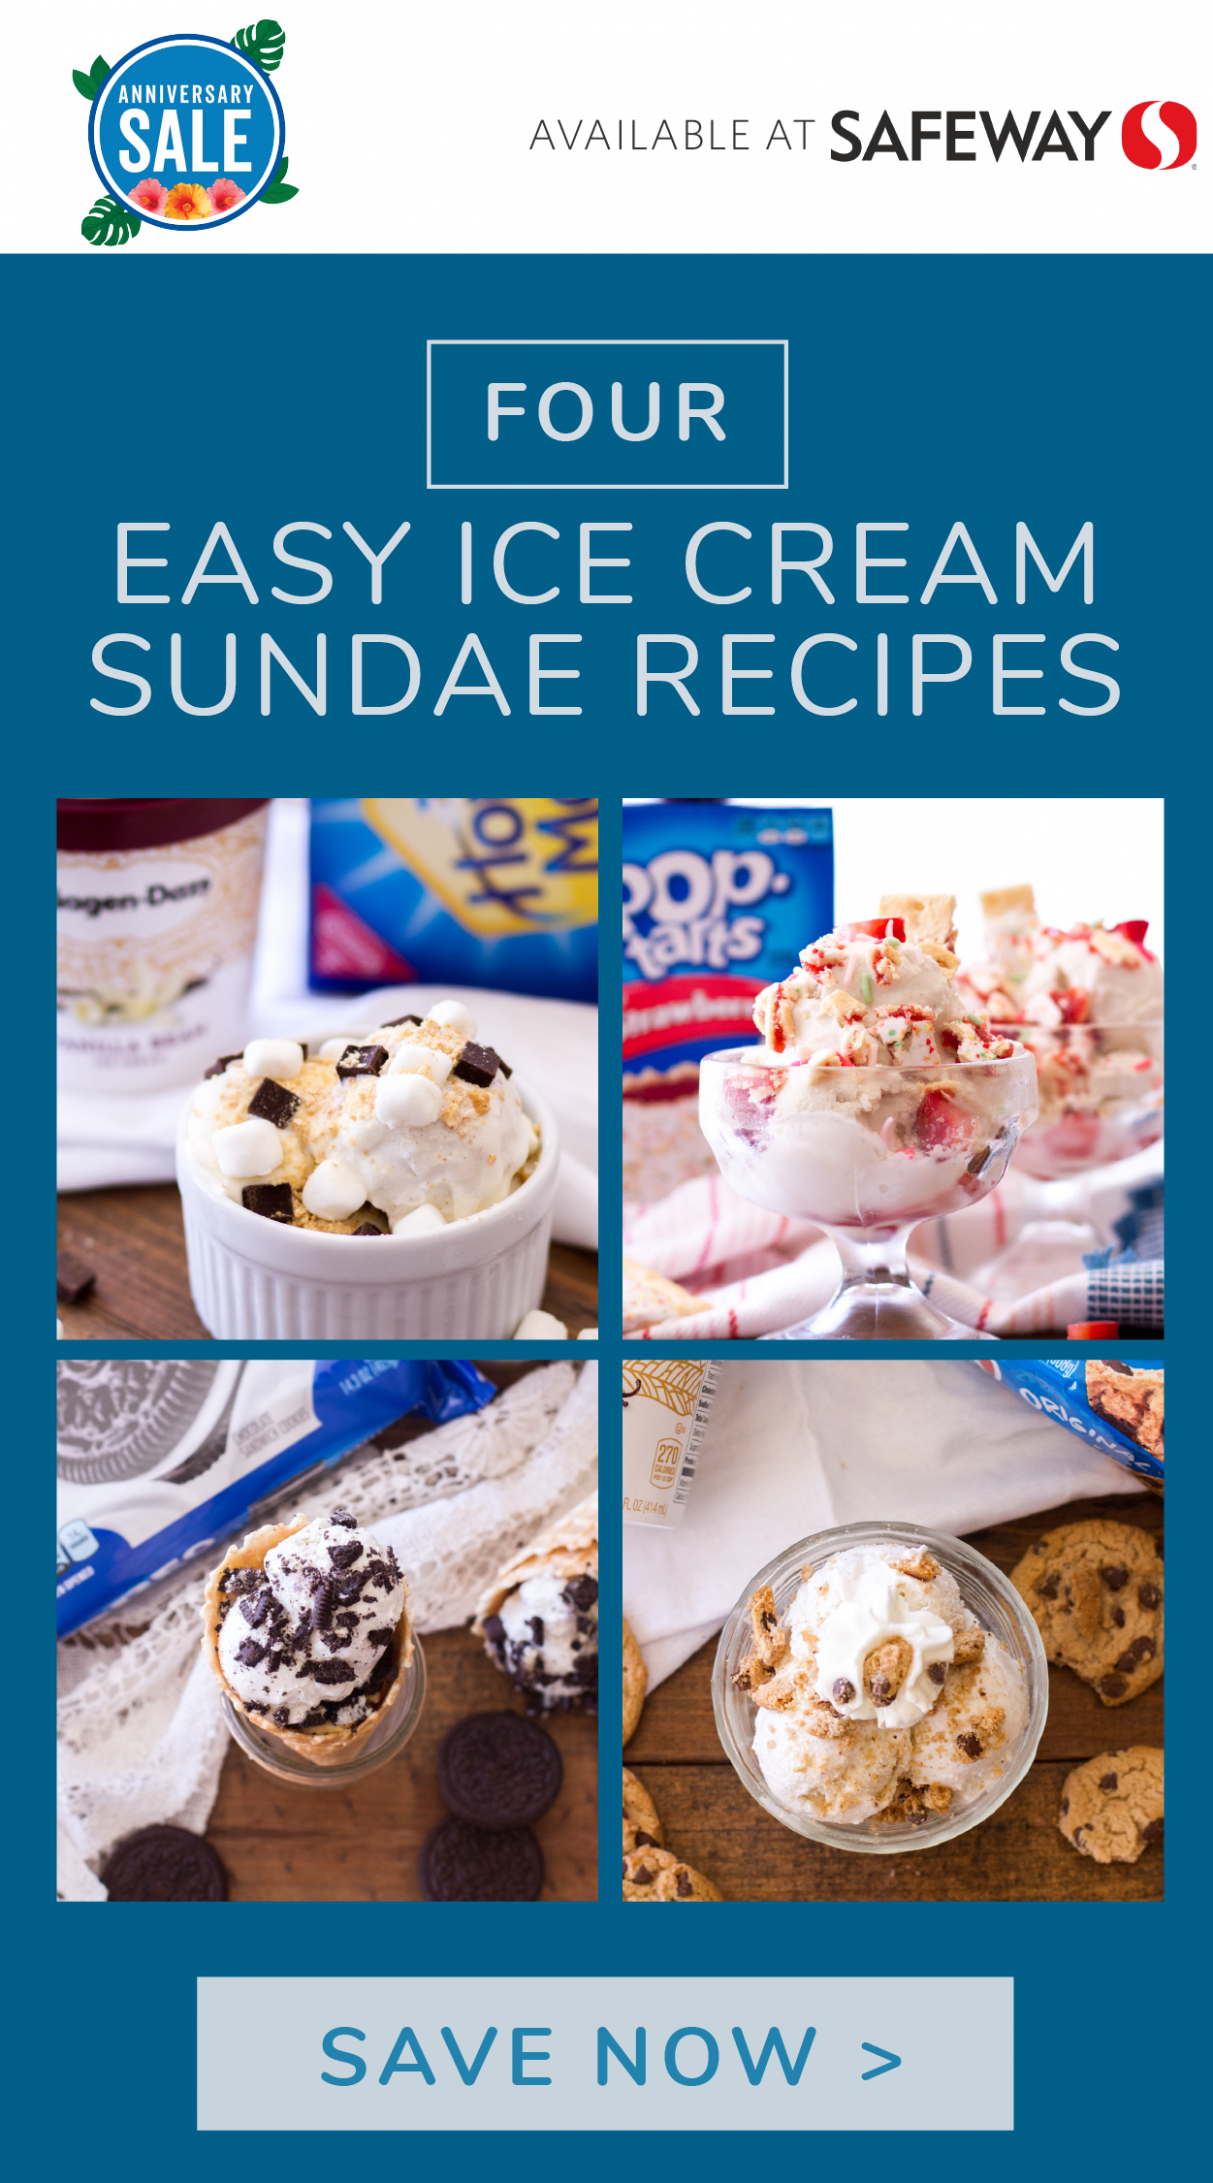 Whether you want an easy dessert for your summer vacation or need ..